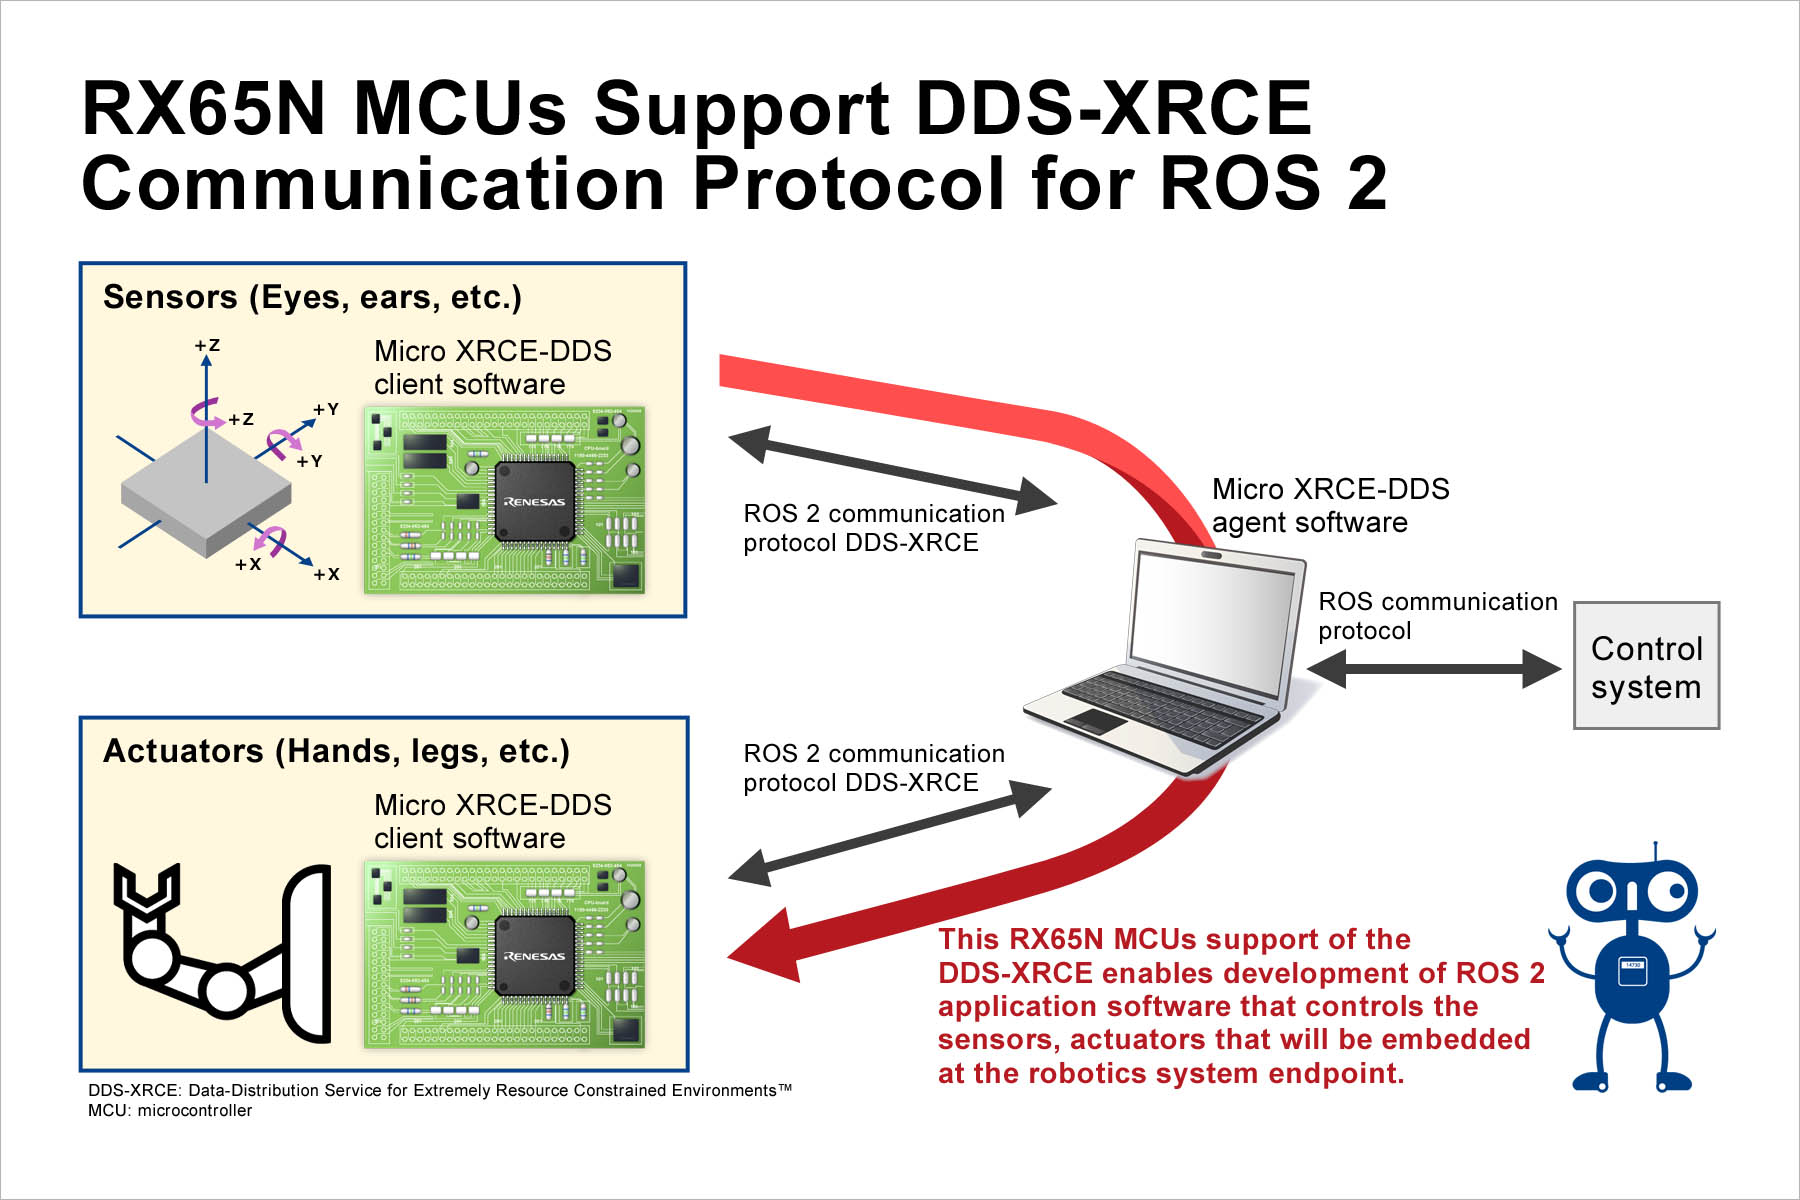 RX65N MCUs Support DDS-XRCE Communication Protocol for ROS 2